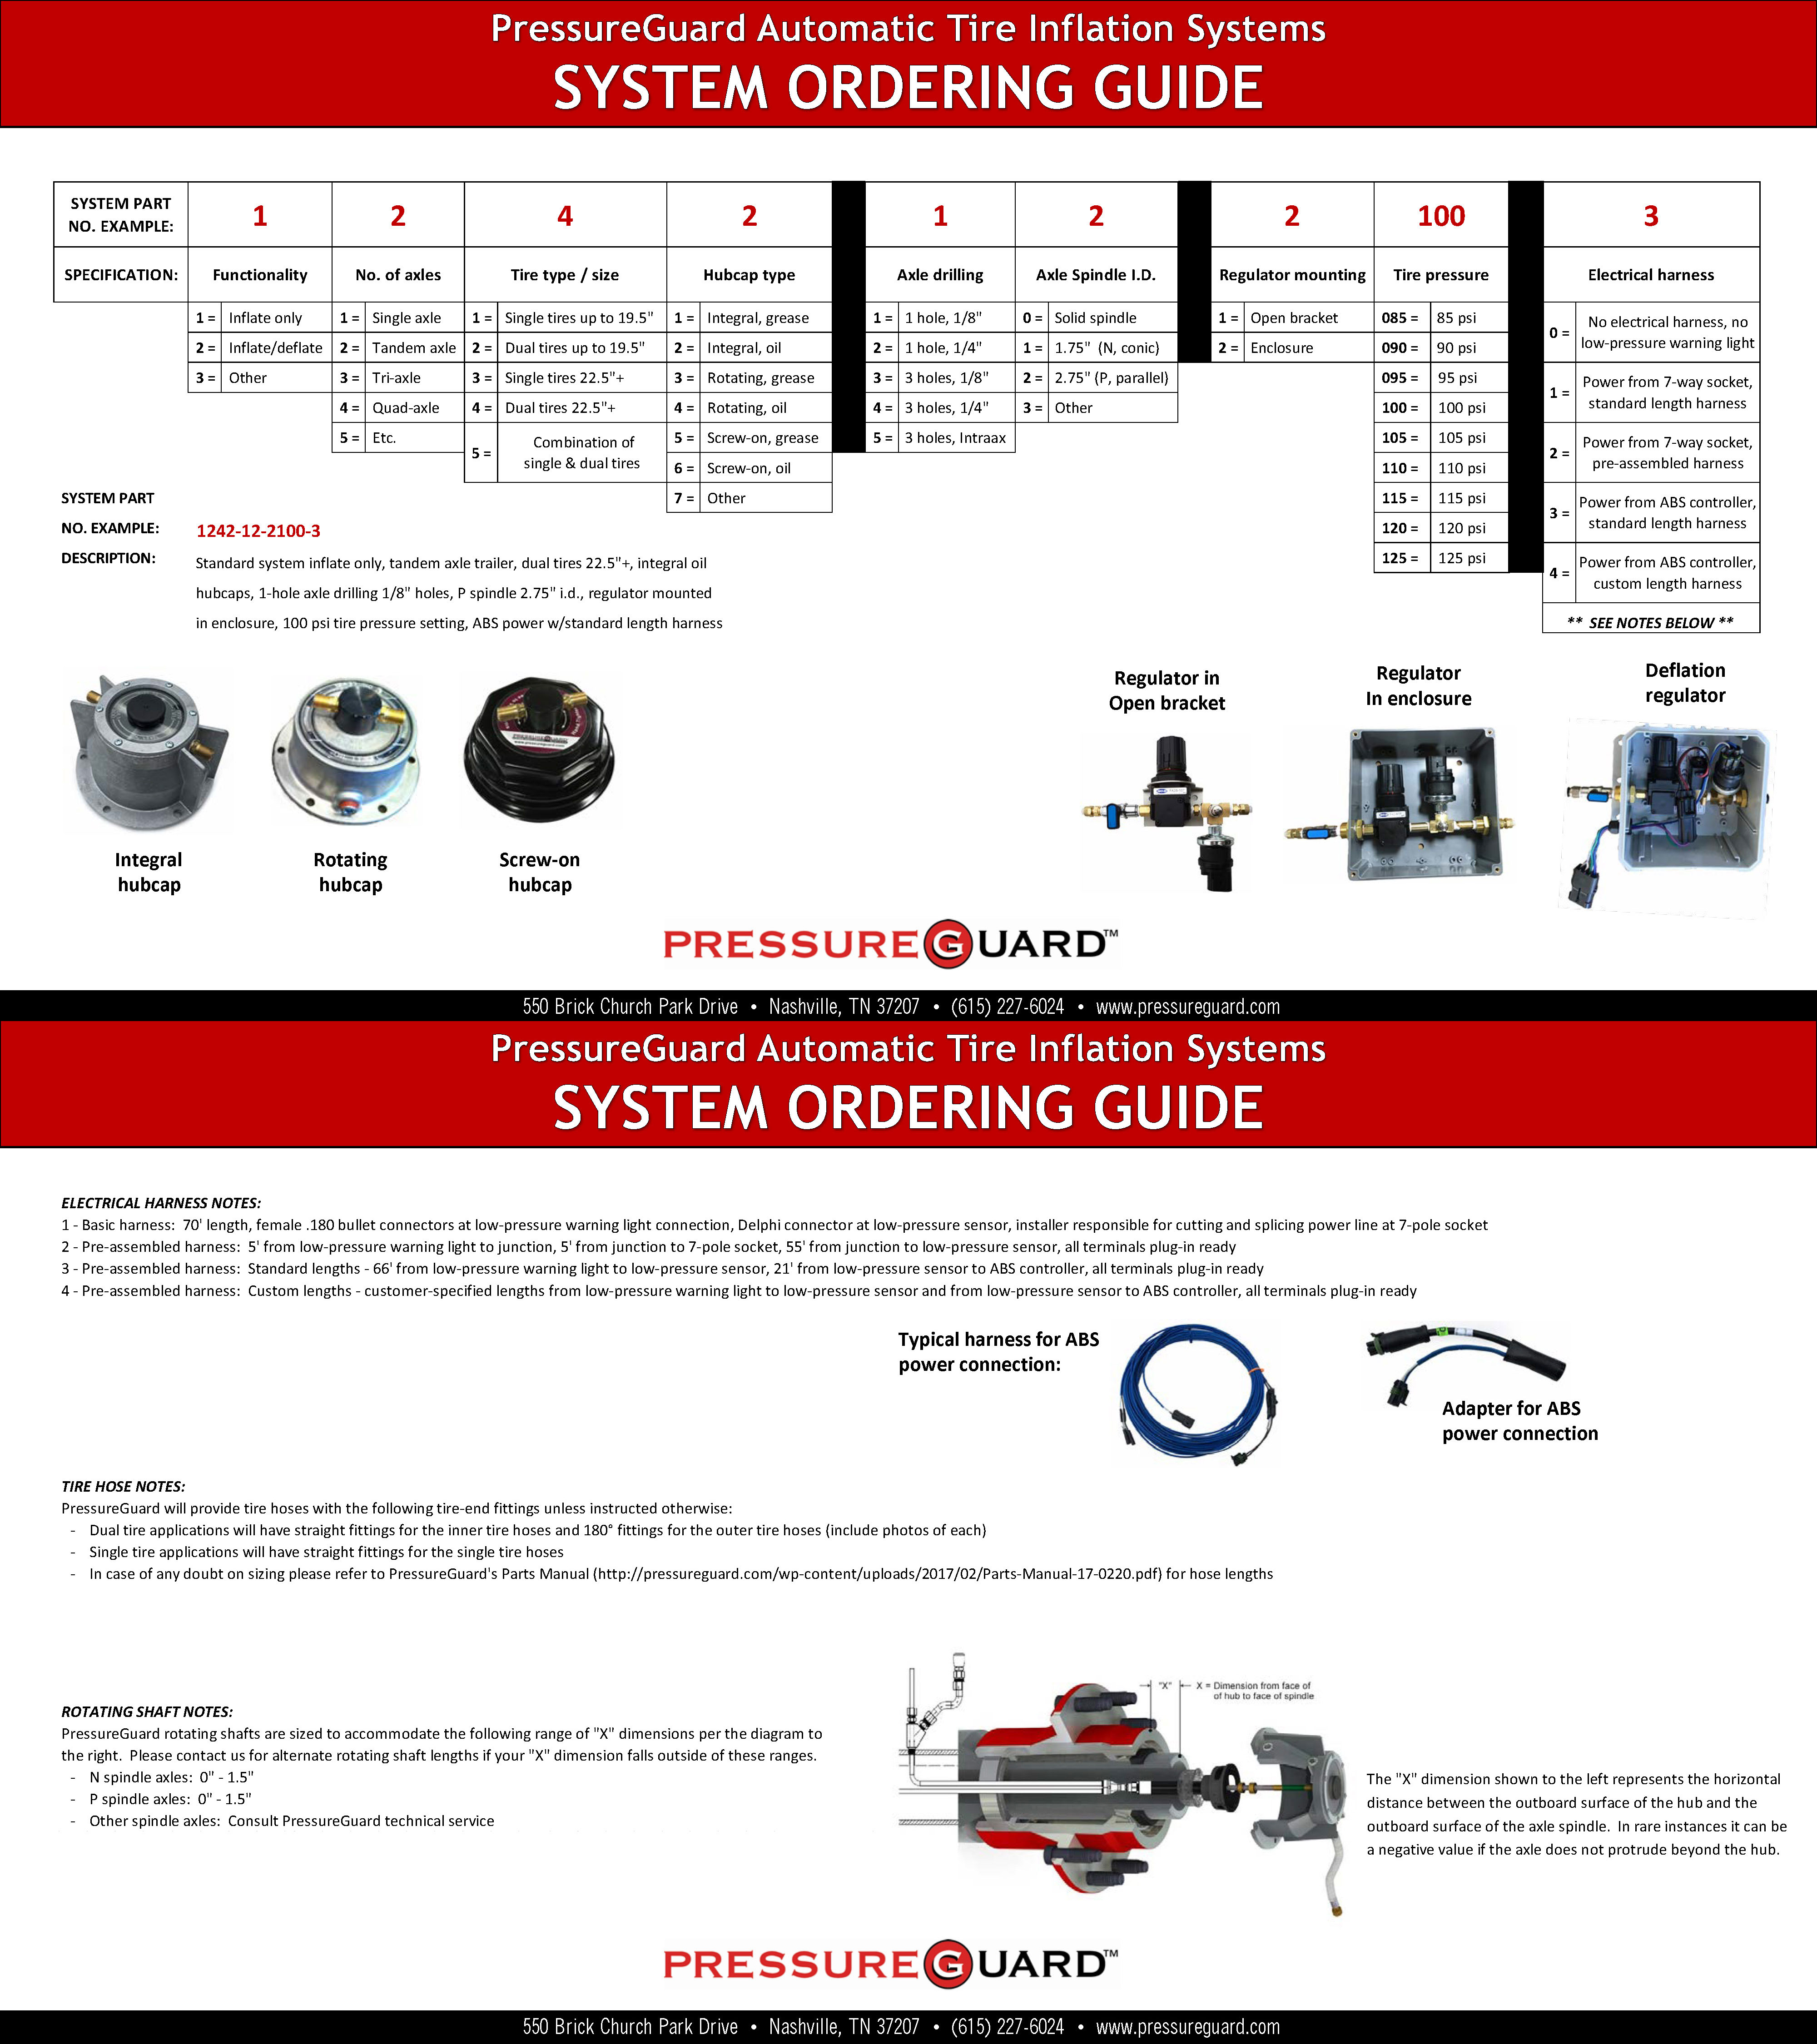 PressureGuard-System-Ordering-Guide-04262017-(002)_Page_1